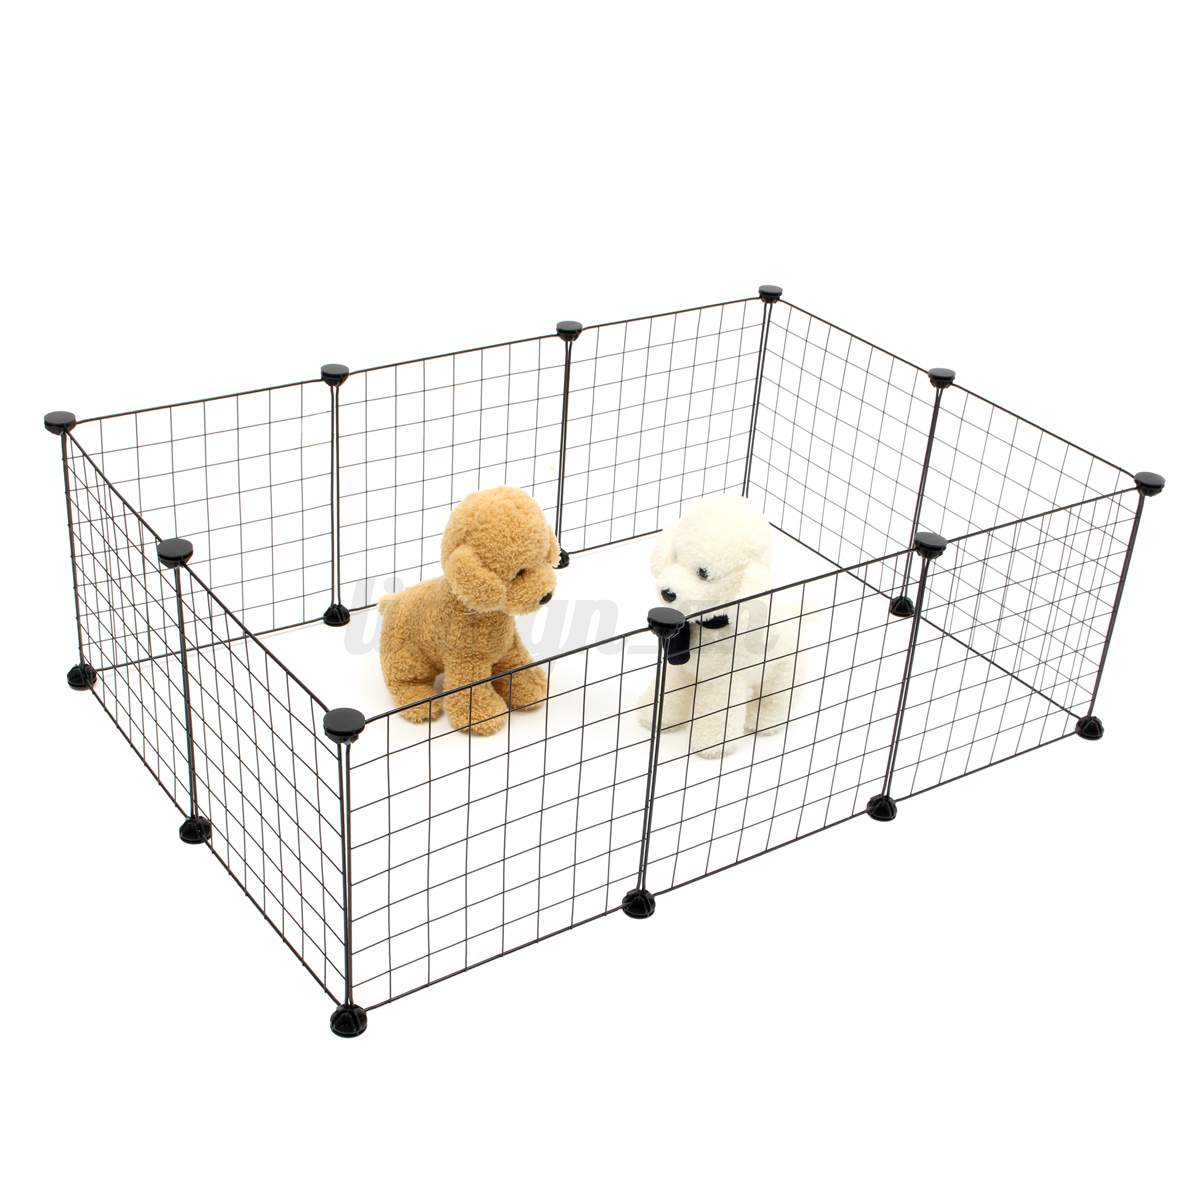 haustier laufstall platten hund kiste zaun welpen kennel bung cage 6 10 panel ebay. Black Bedroom Furniture Sets. Home Design Ideas